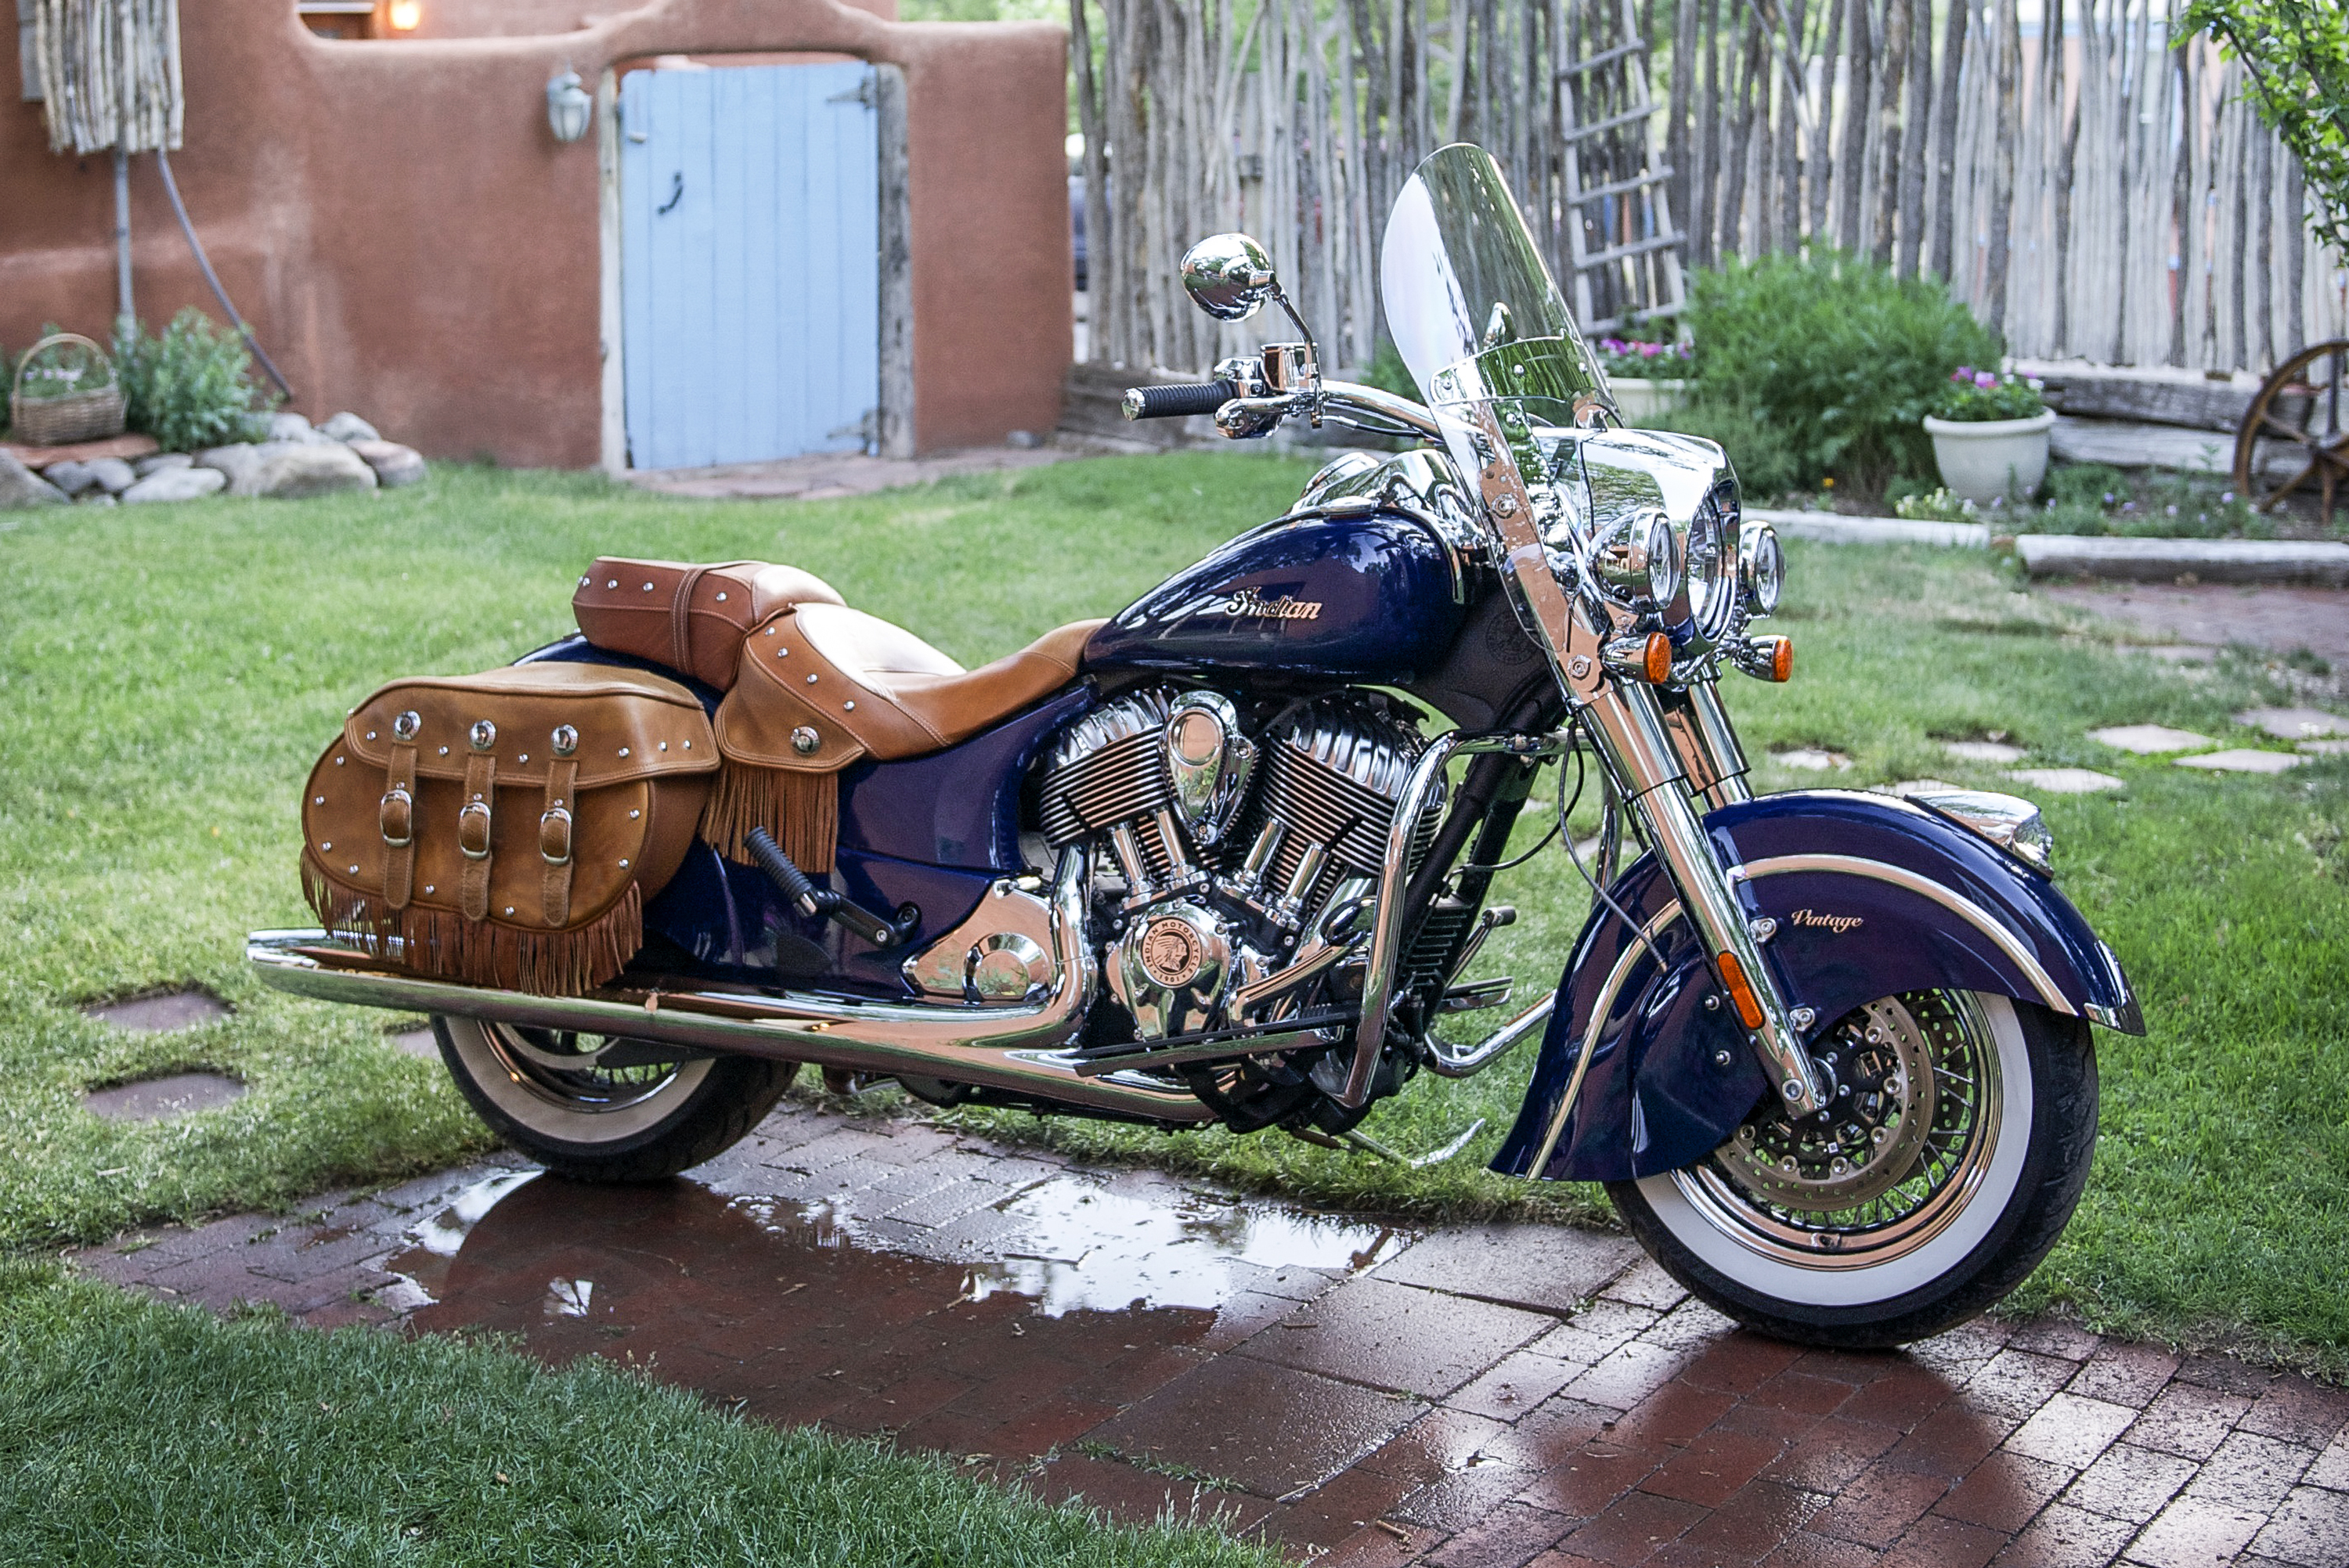 Indian Motorcycle Announces The All-New Line Of 2014 Indian Chief Motorcycles -8186